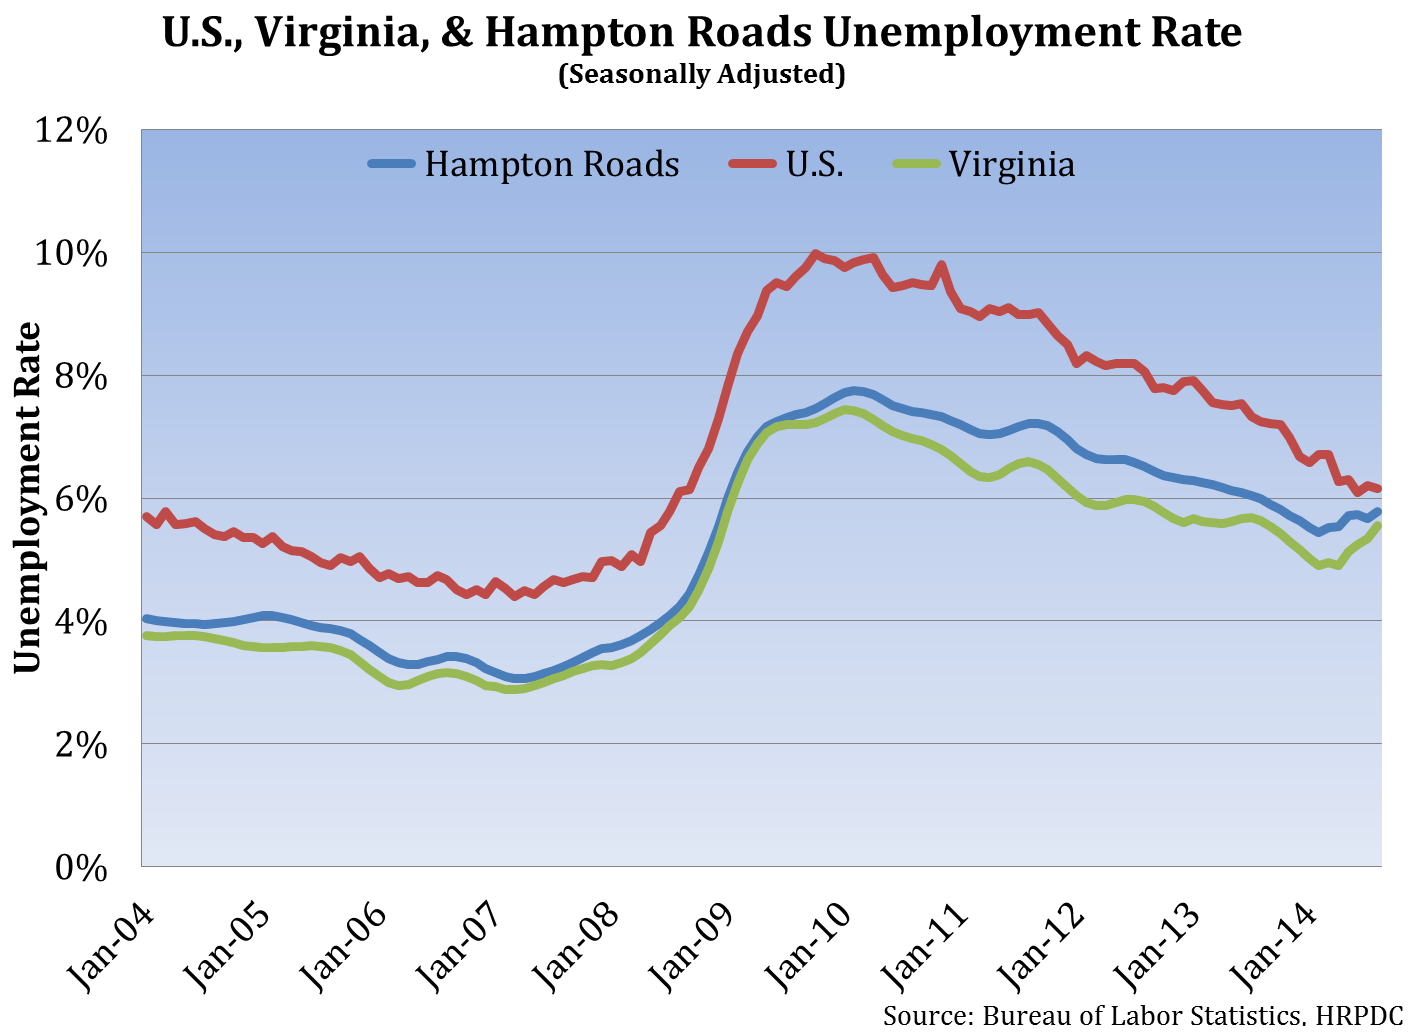 U.S., Virginia, and Hampton Roads Unemployment Rate